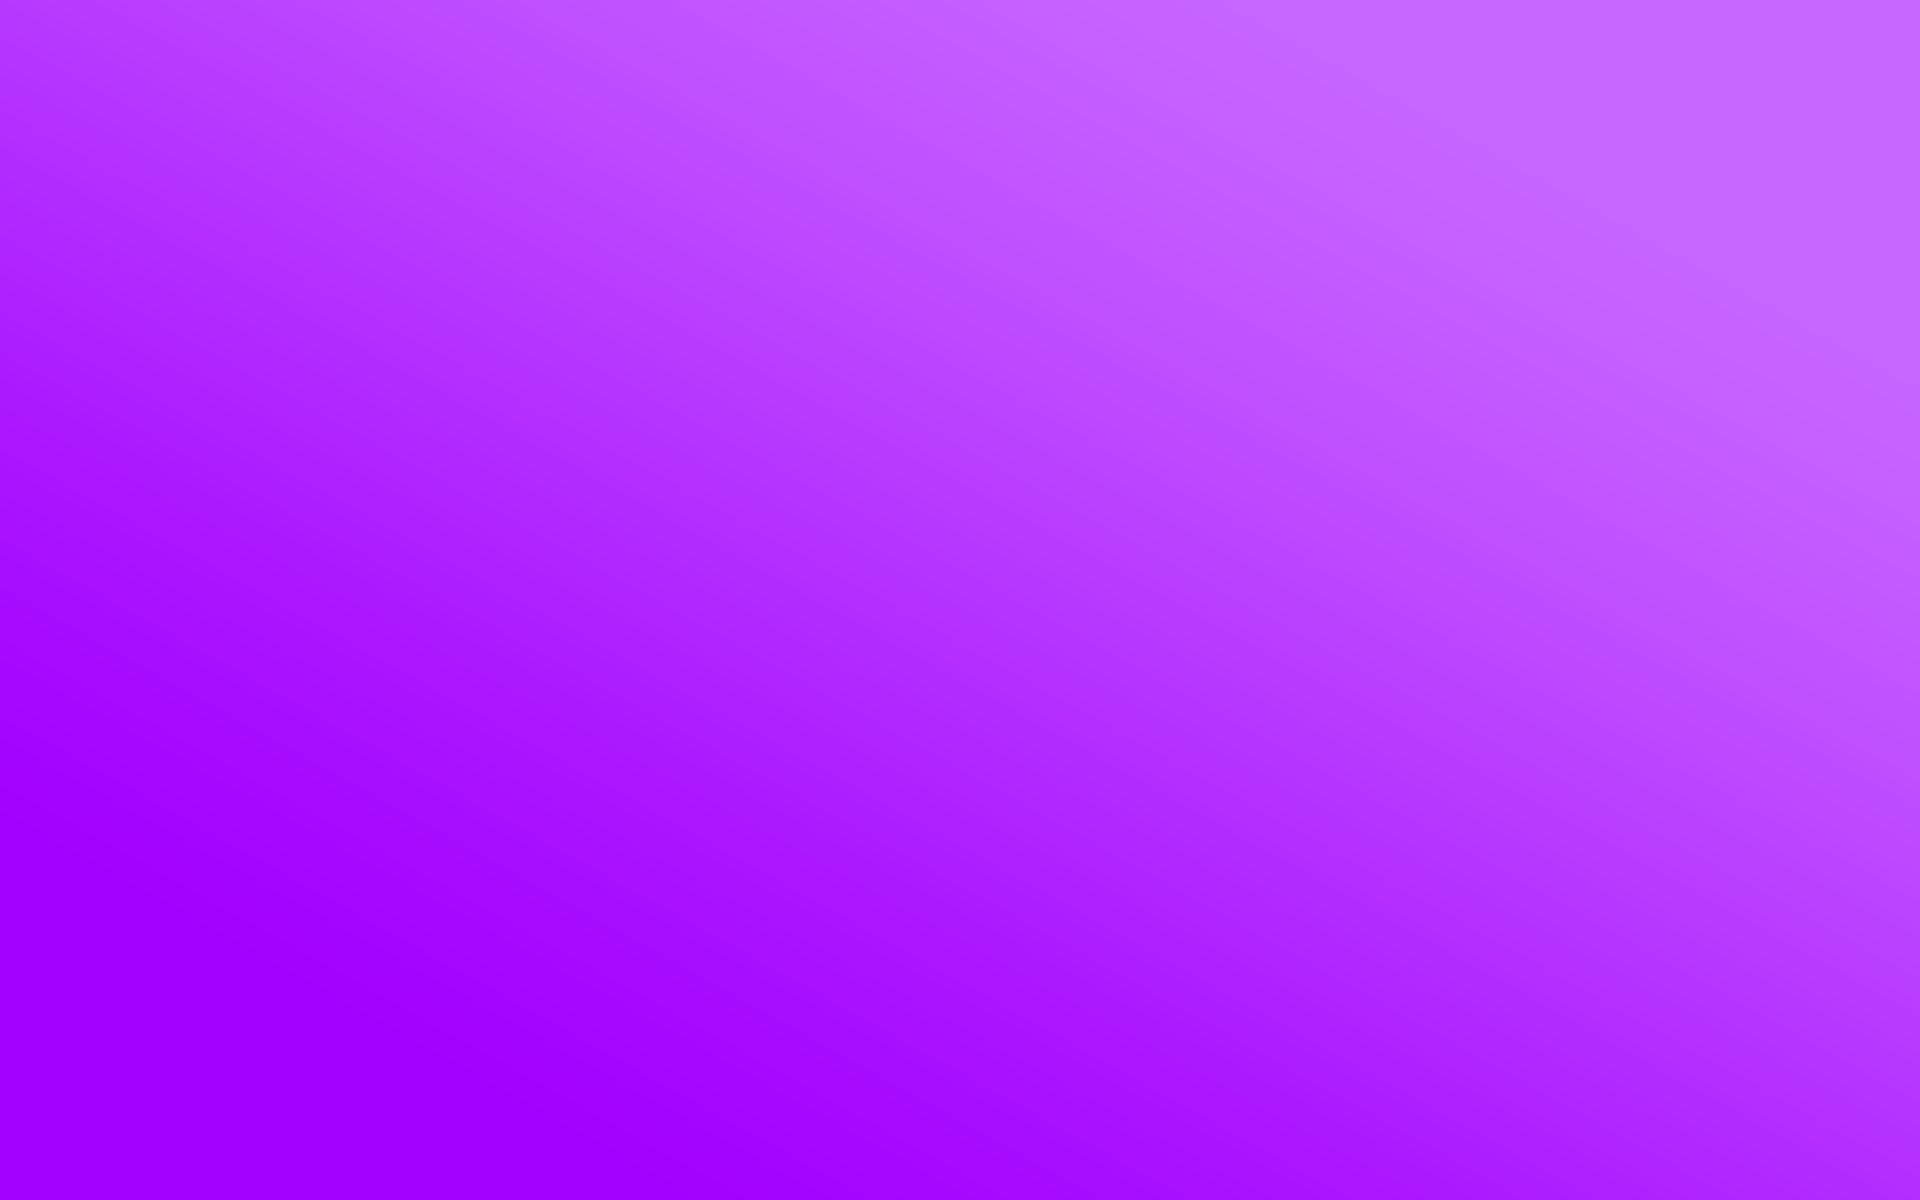 Cool Purple Iphone Wallpapers: Purple Background ·① Download Free Stunning Wallpapers For